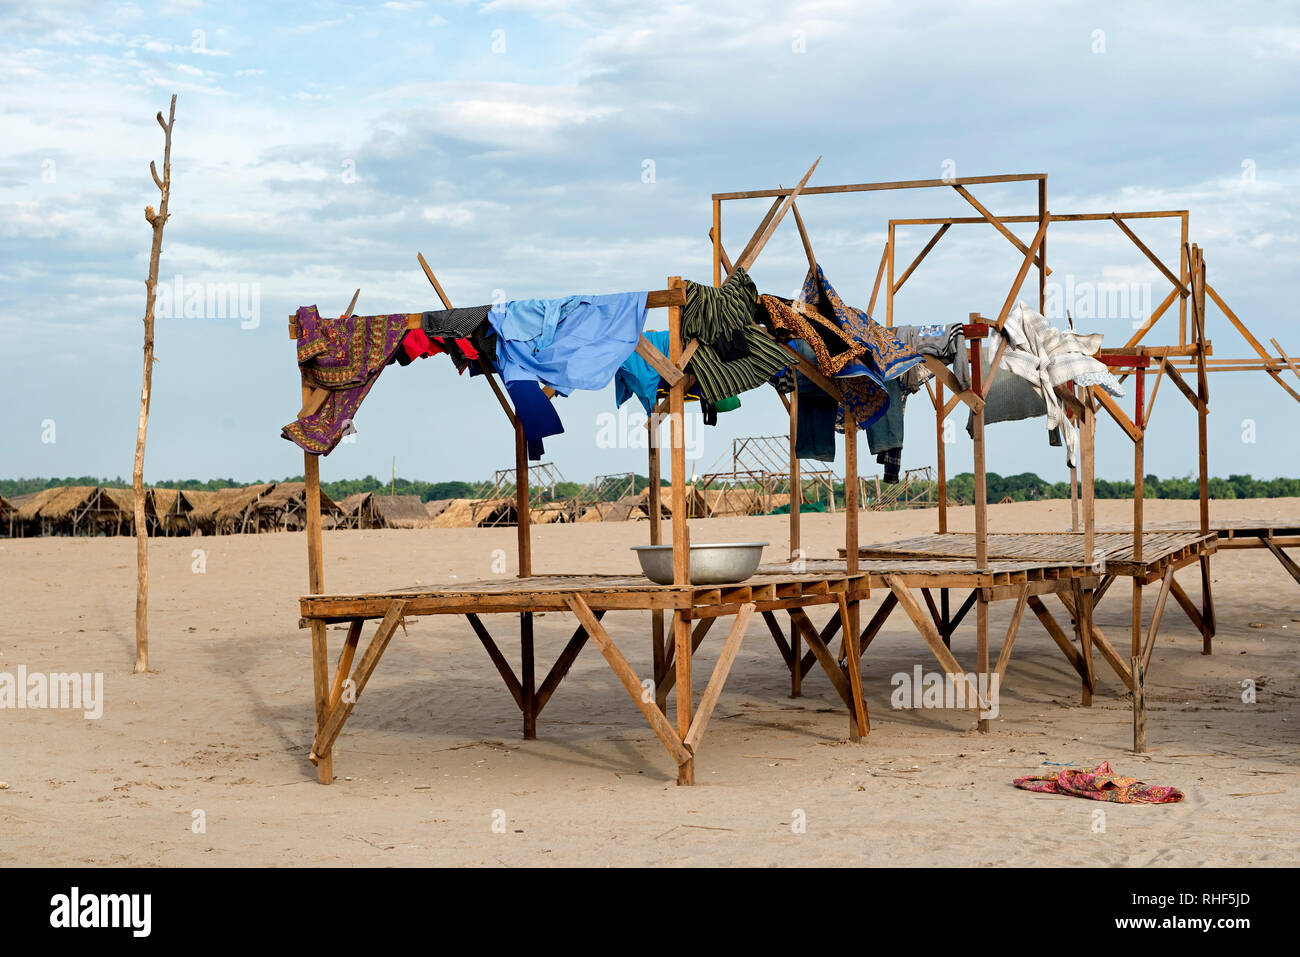 Drying clothes on the beach - Stock Image